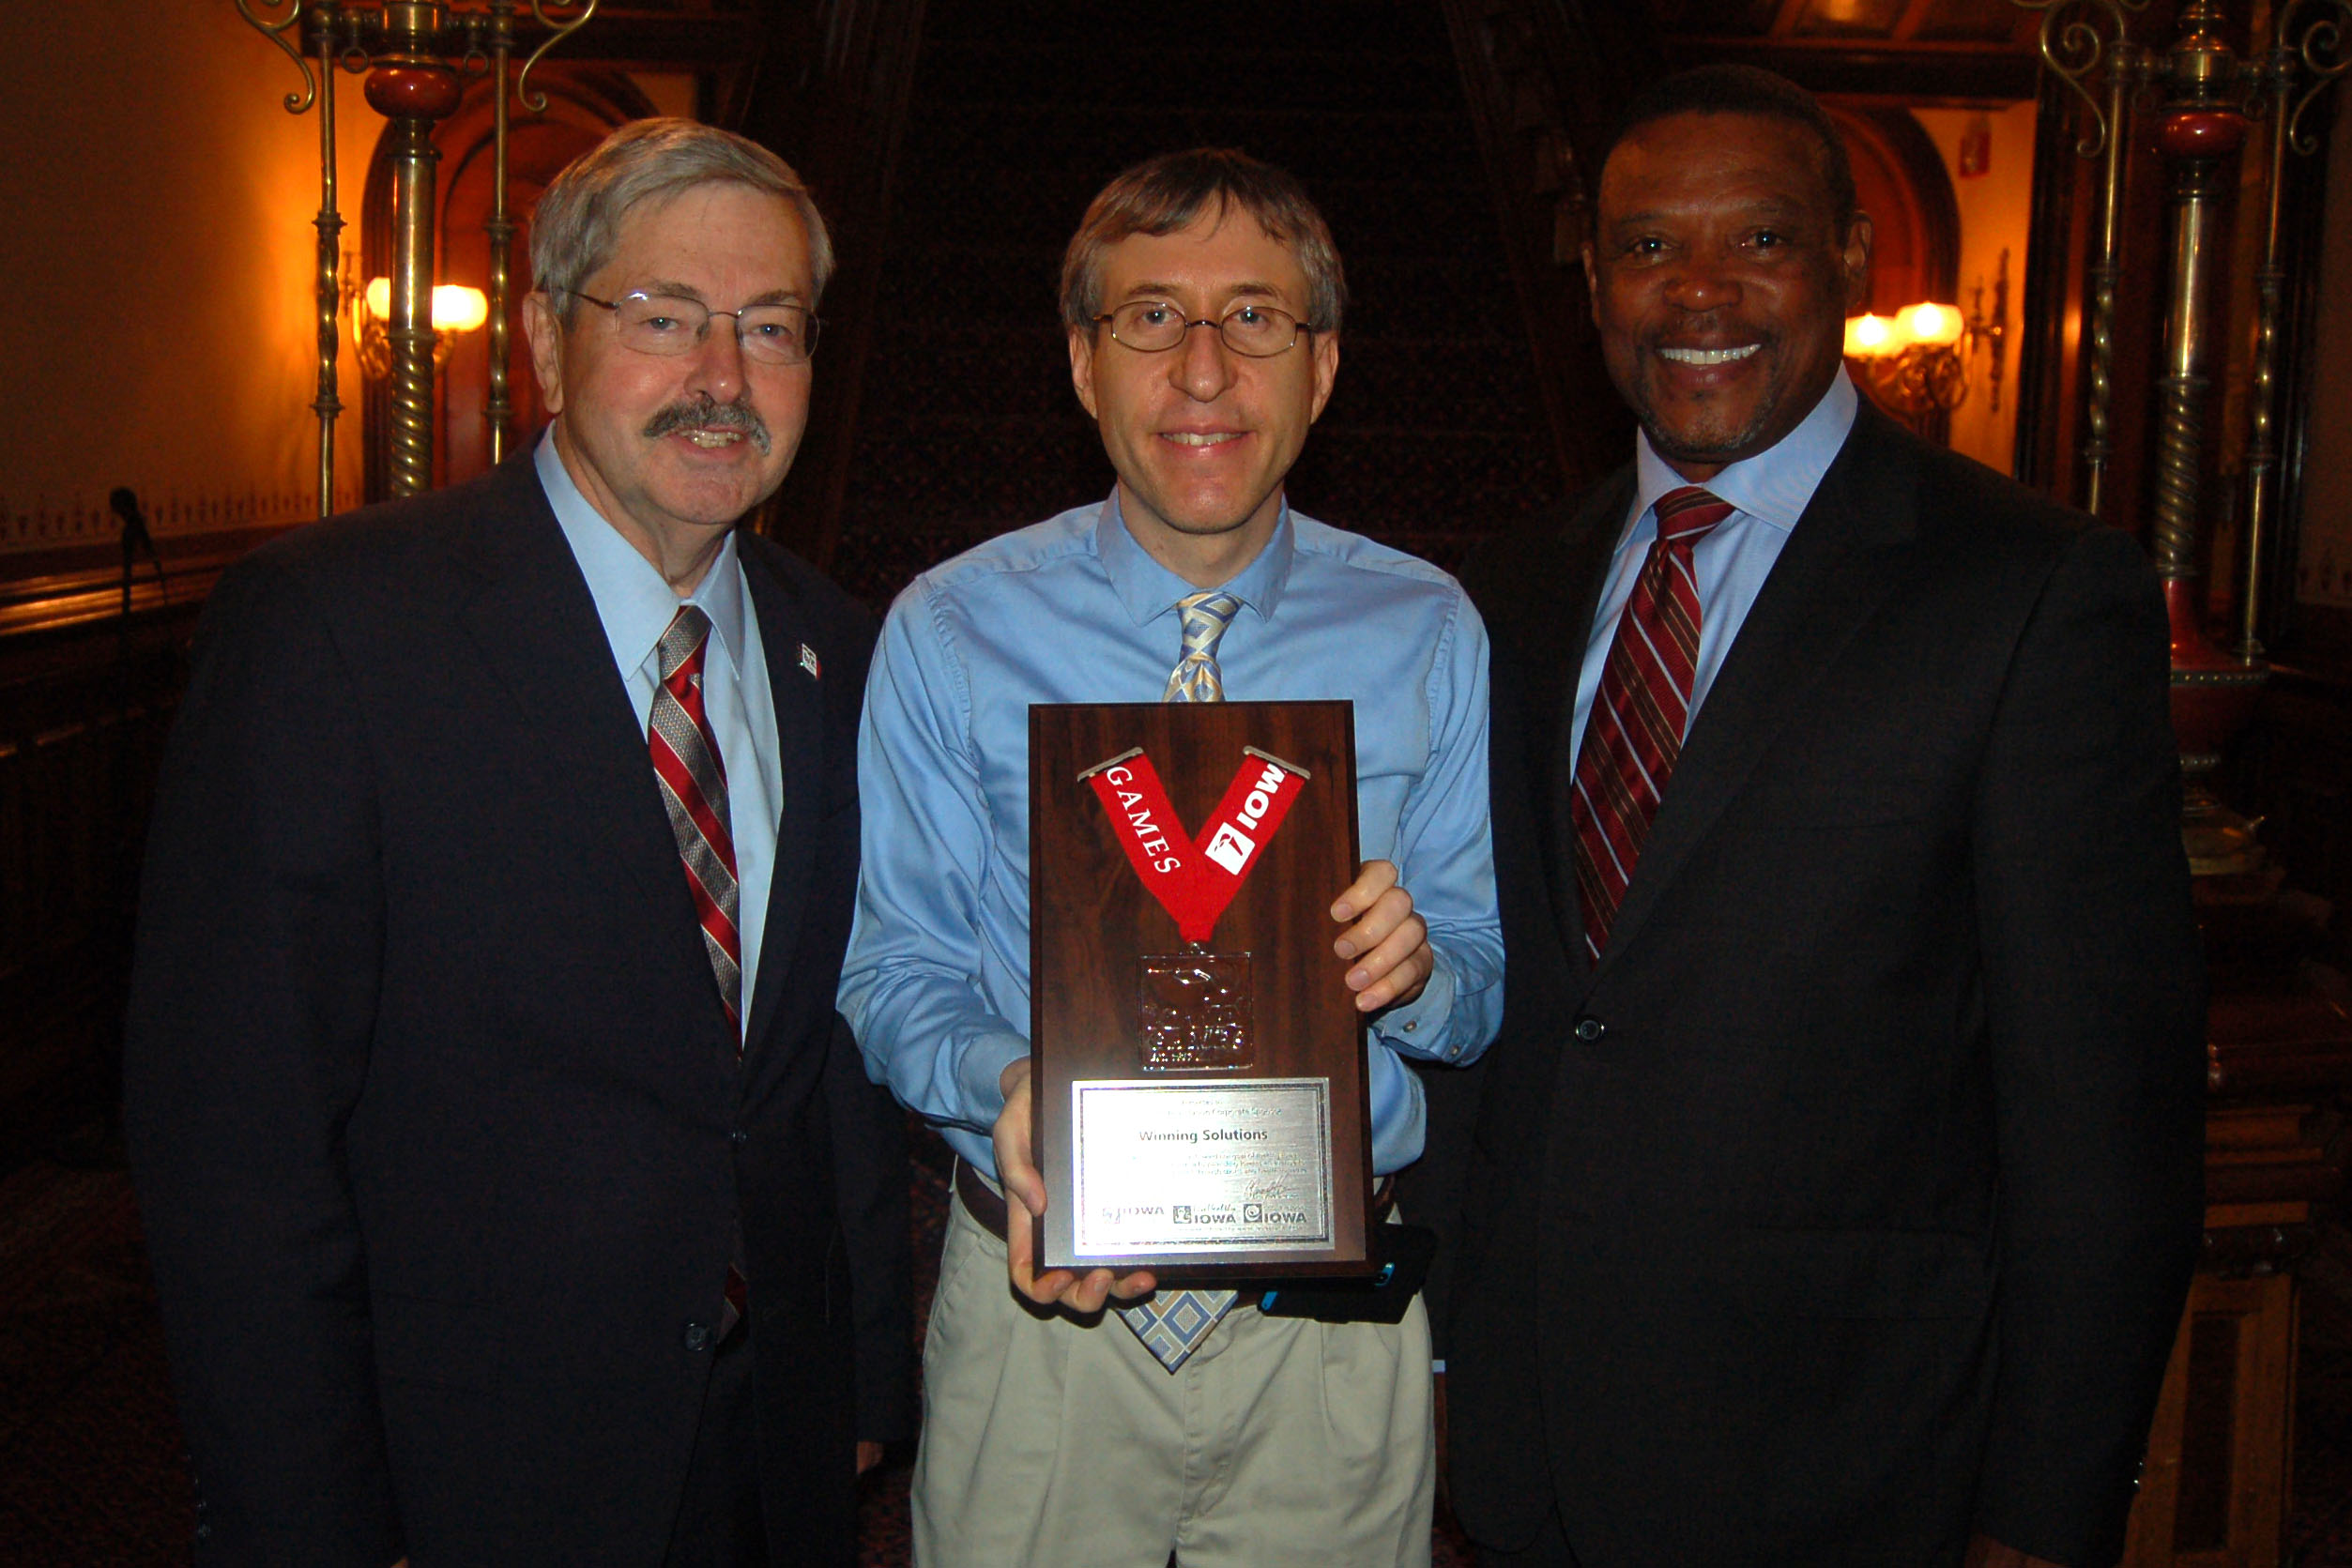 Mark Steffen (center) of Winning Solutions, Inc. is pictured accepting a plaque recognizing WSI's service to the Iowa Sports Foundation from Former Governor Terry Branstad (left) Former Iowa Governor Clarence Hudson (Right), among others was in attendance.